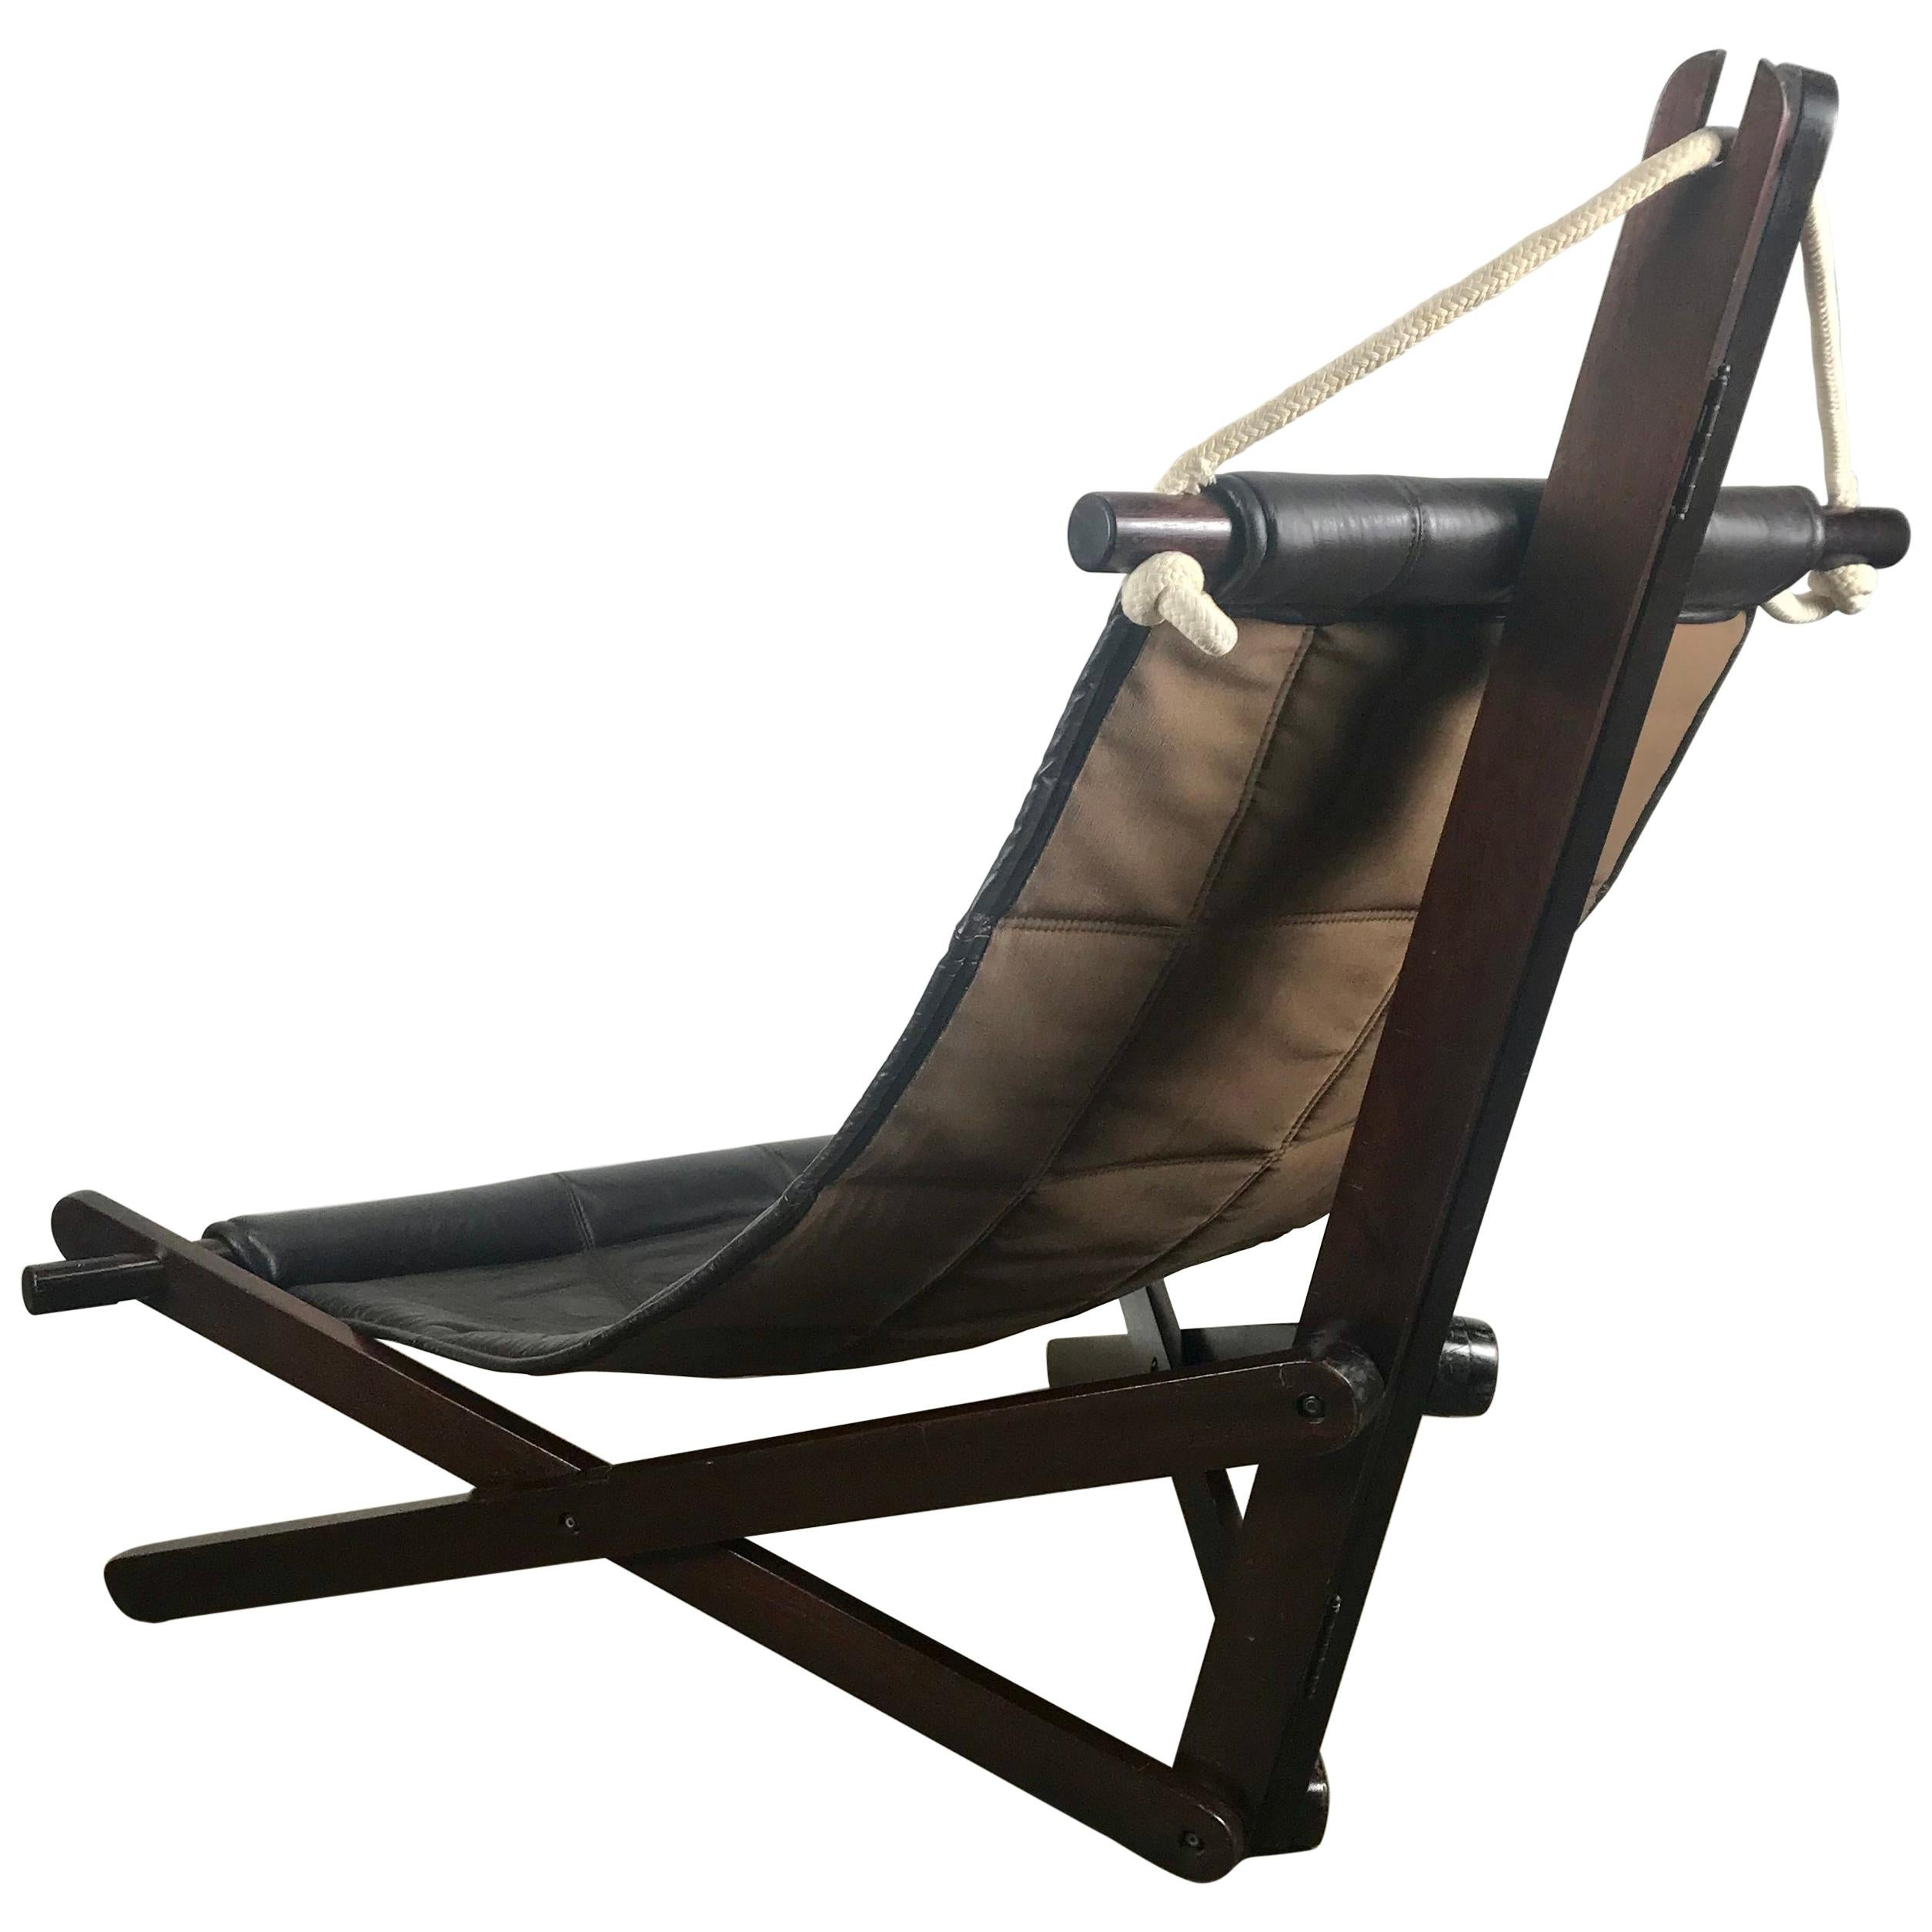 """Sculptural Lounge Sling, Dominic Michaelis """"Sail Chair"""" for Moveis Corazza"""